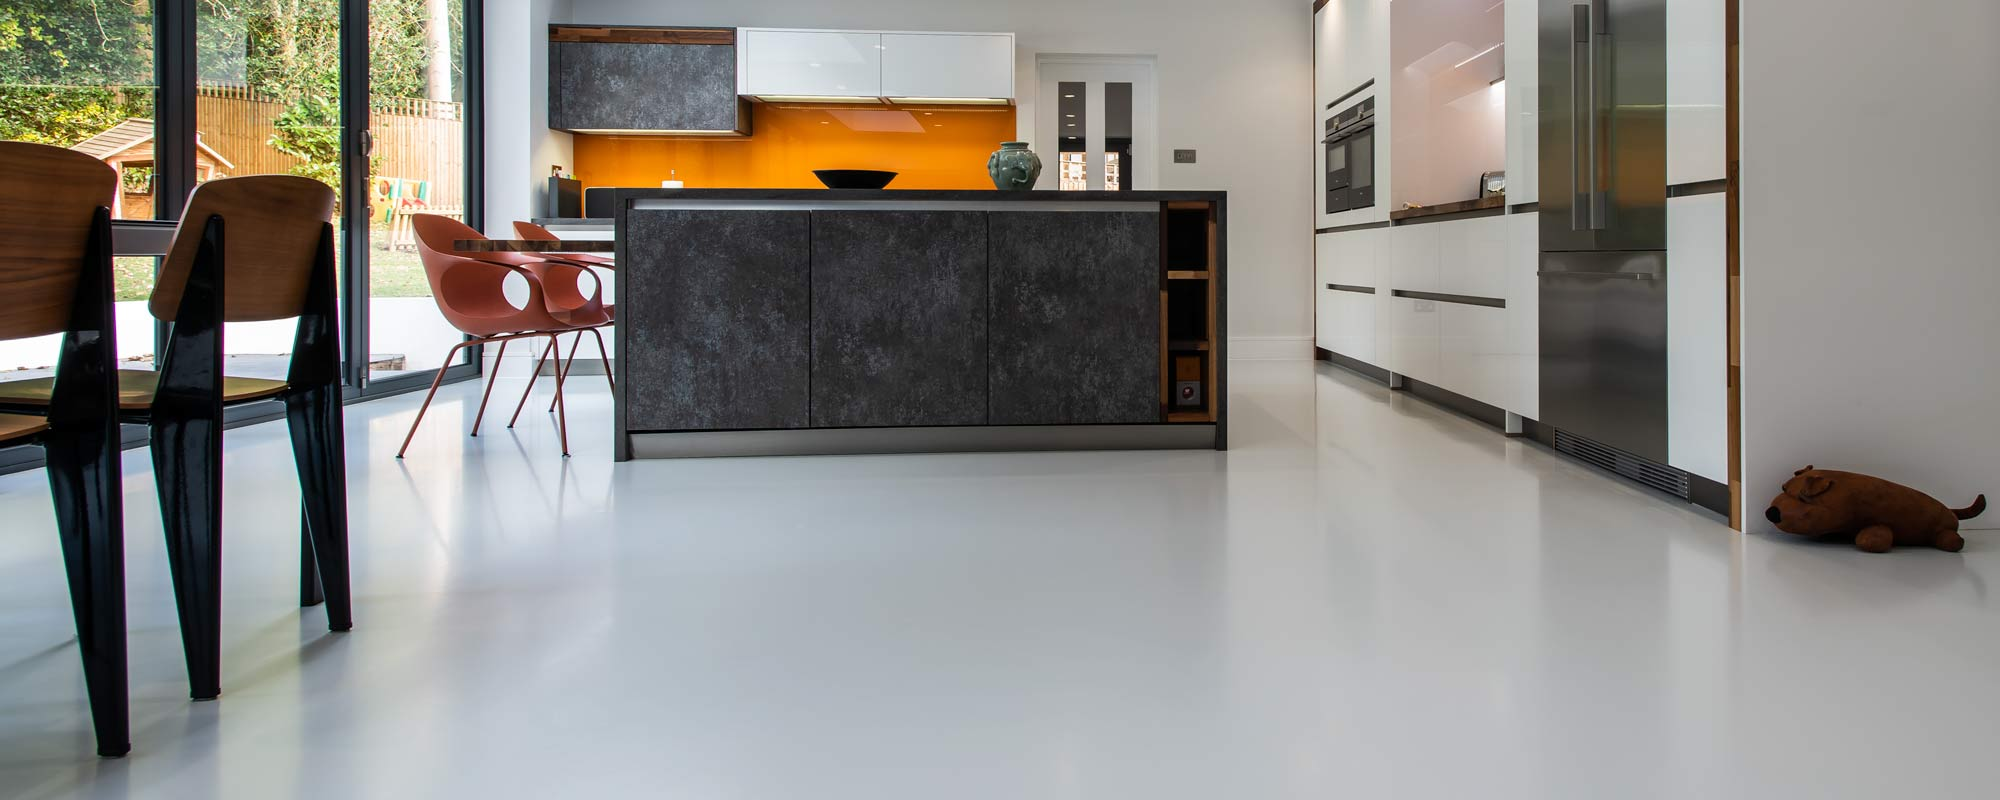 resin kitchen floor